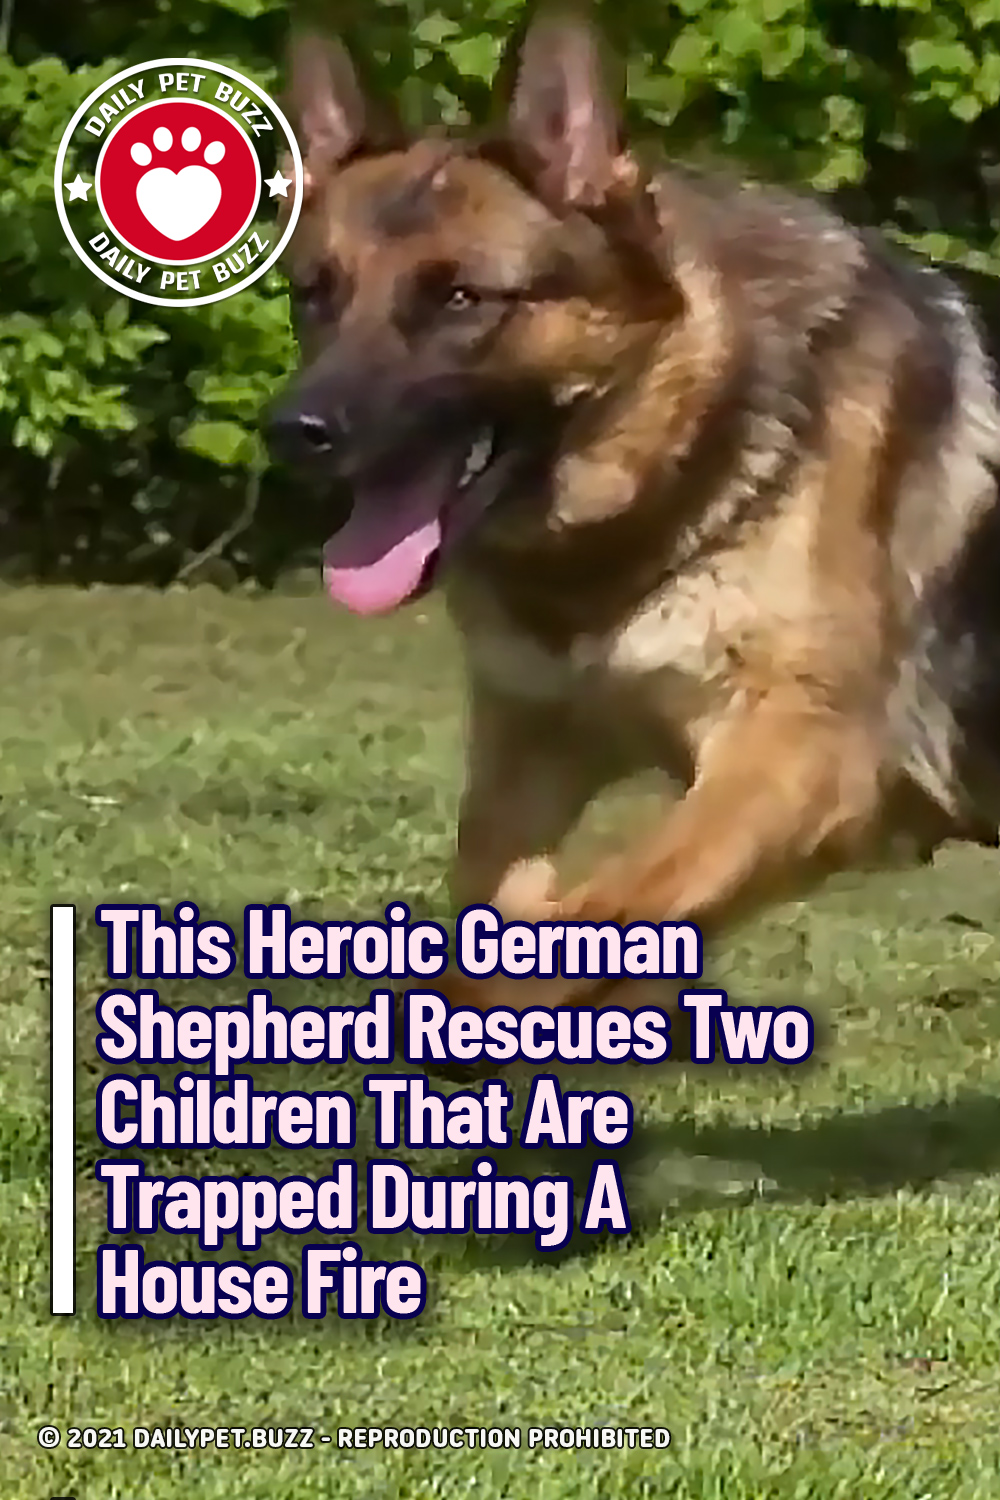 This Heroic German Shepherd Rescues Two Children That Are Trapped During A House Fire